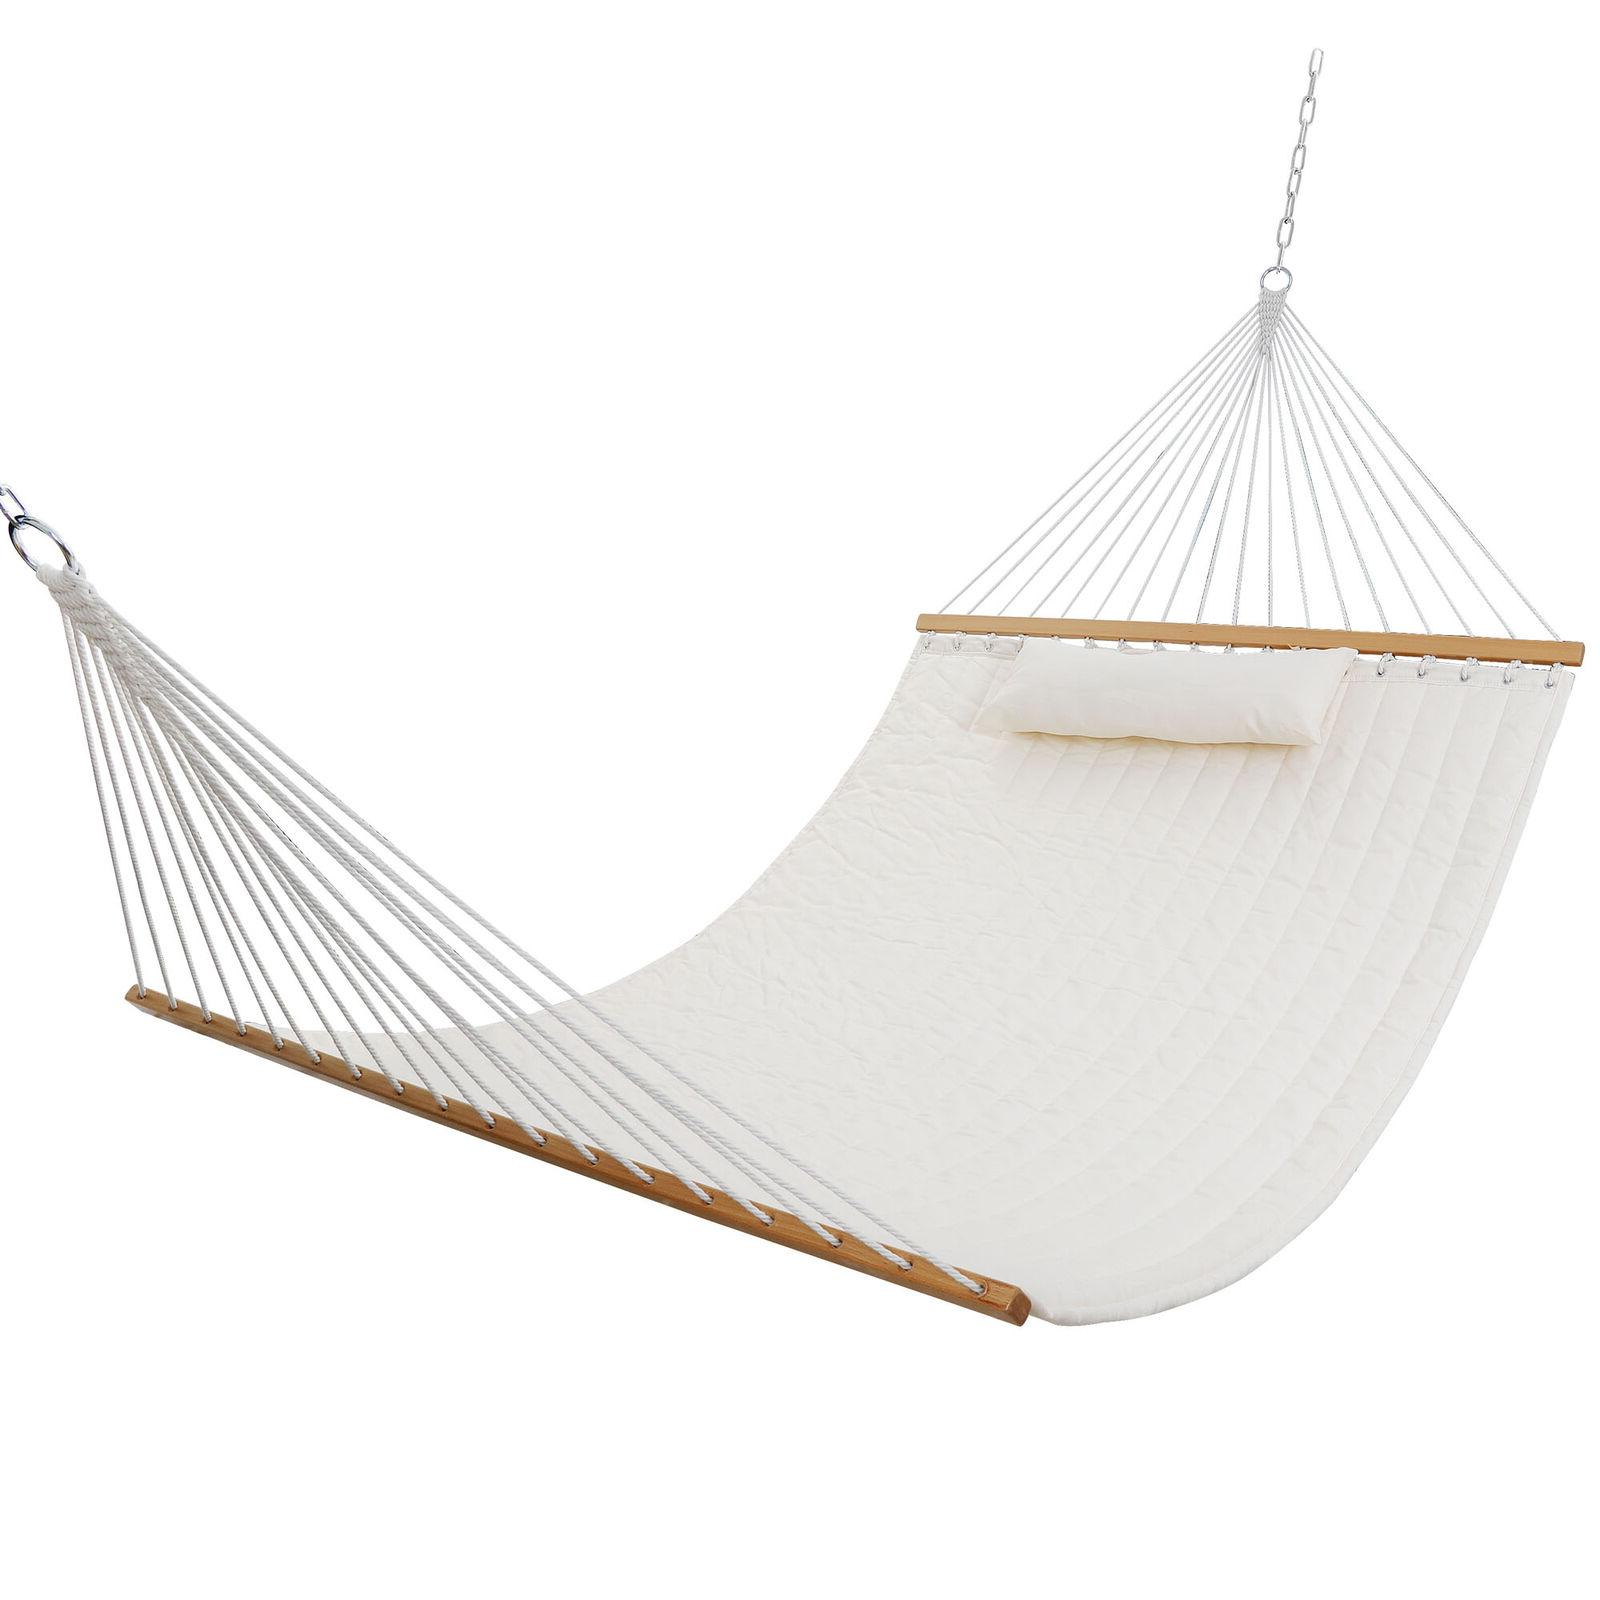 Double Hammock Quilted Fabric W/ 2 Person White